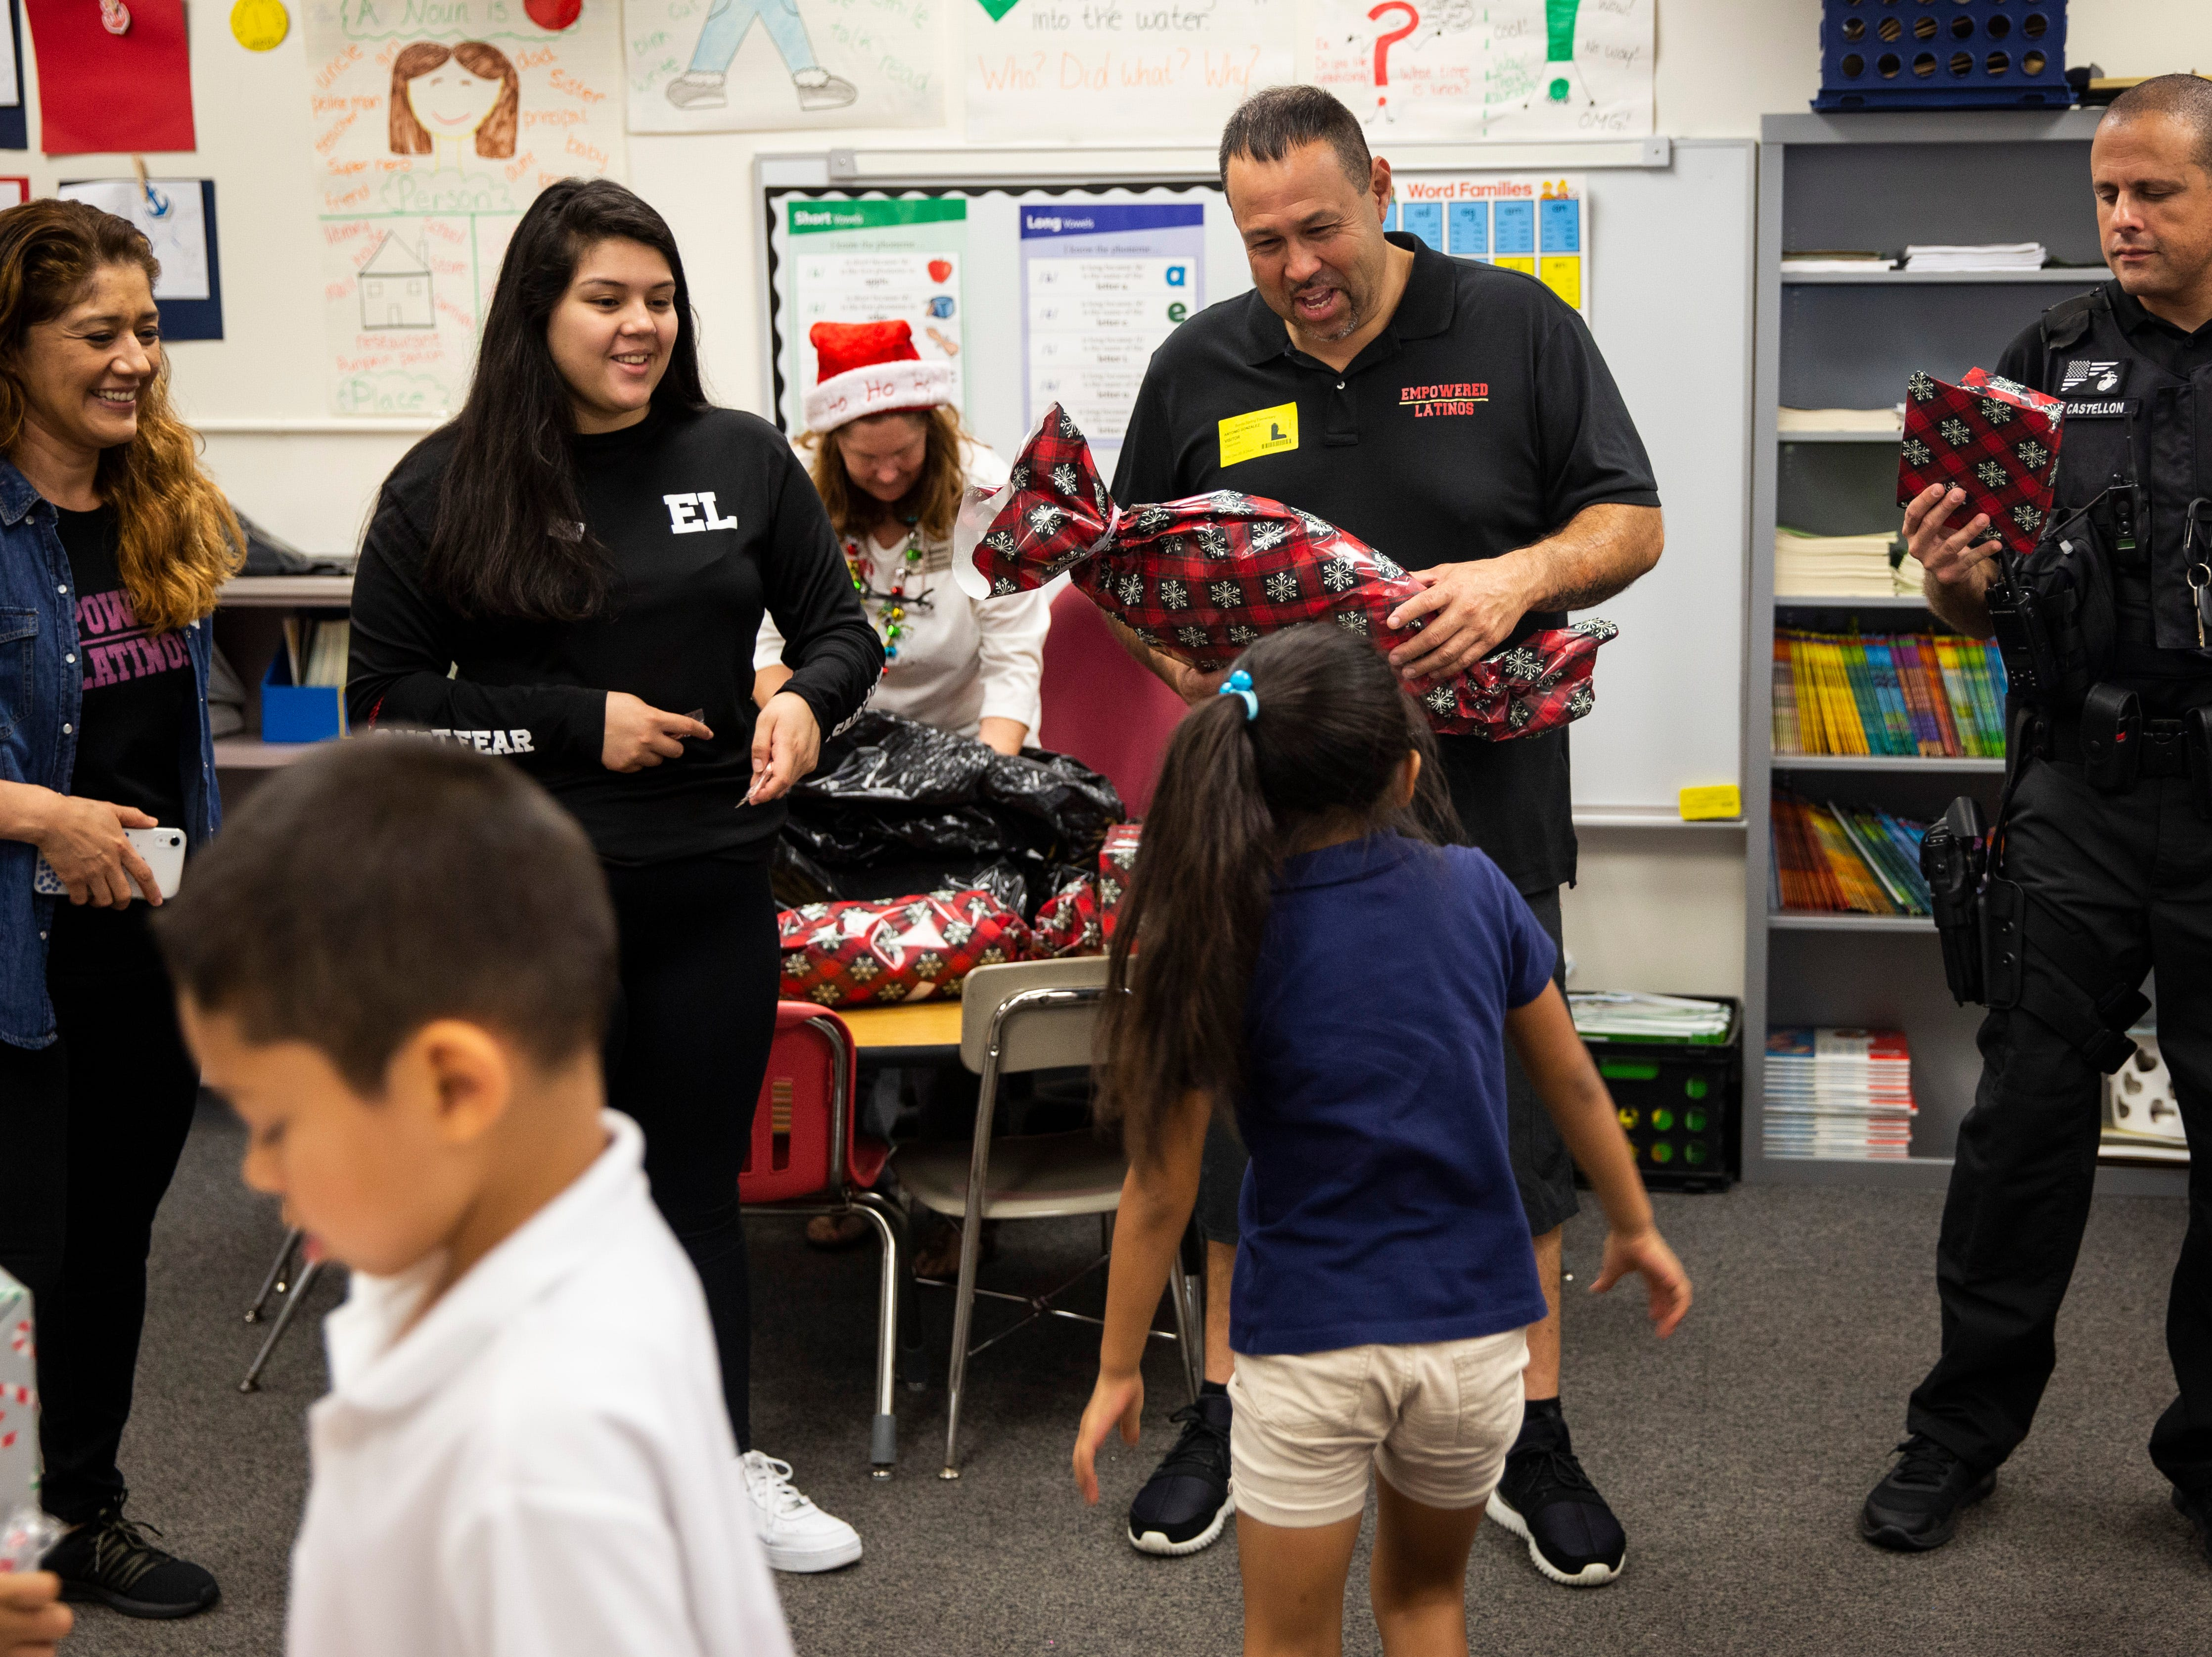 From left to right, Juanita Gonzalez, Rosemary Gonzalez, and Tony Gonzalez, from Empowered Latinos, along with Richard Castellon, K-9 handler with the Lee County Sheriff's Office, distribute toys to students on Thursday, December 20, 2018, at Bonita Springs Elementary School in Bonita Springs.